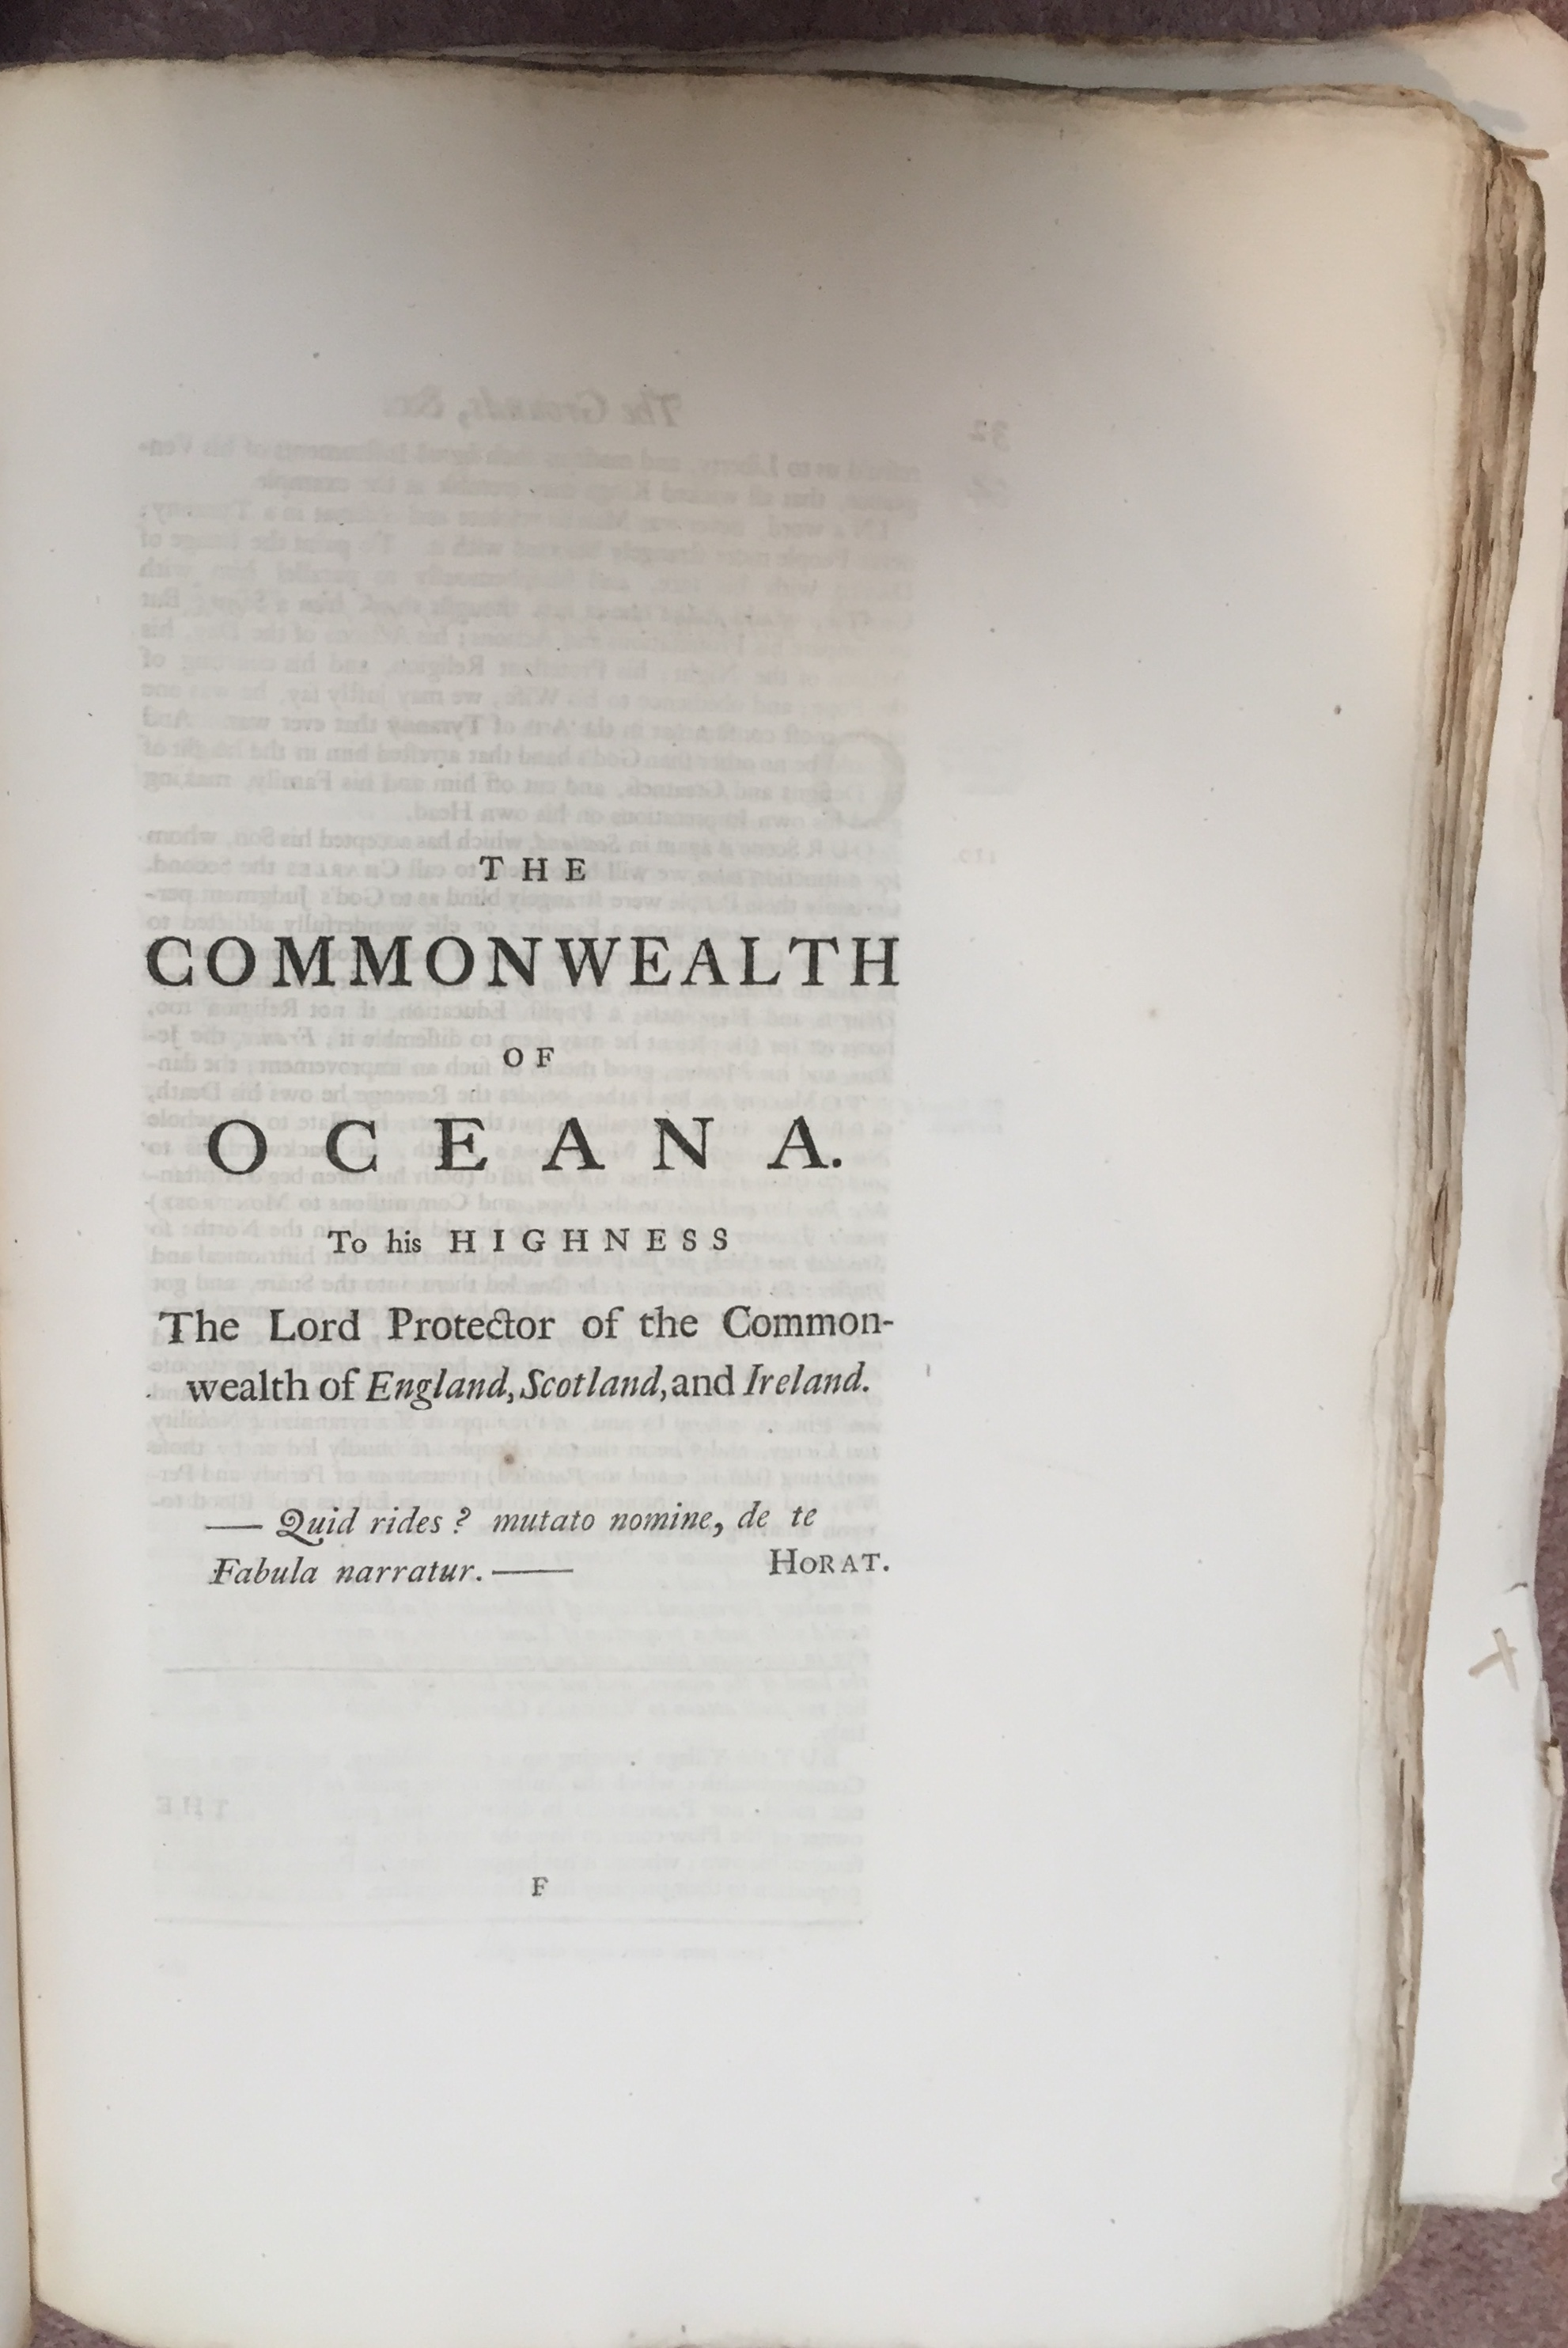 Frontispiece to James Harrington,  The Commonwealth of Oceana  in  The Oceana and Other Works of James Harrington , ed. John Toland (London, 1737). Private copy.